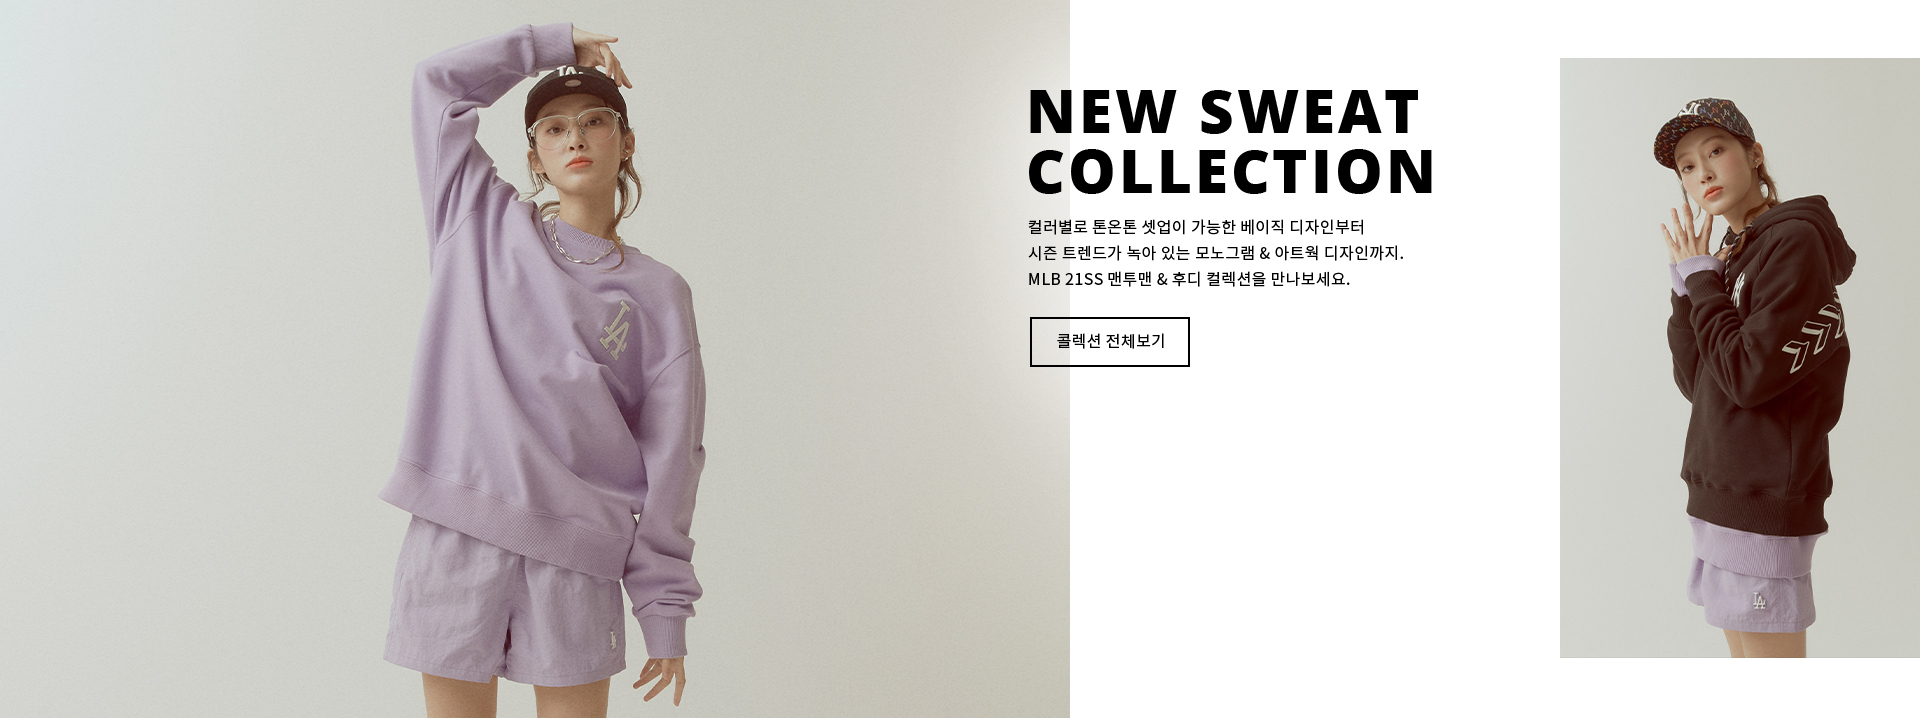 NEW SWEAT COLLECTION